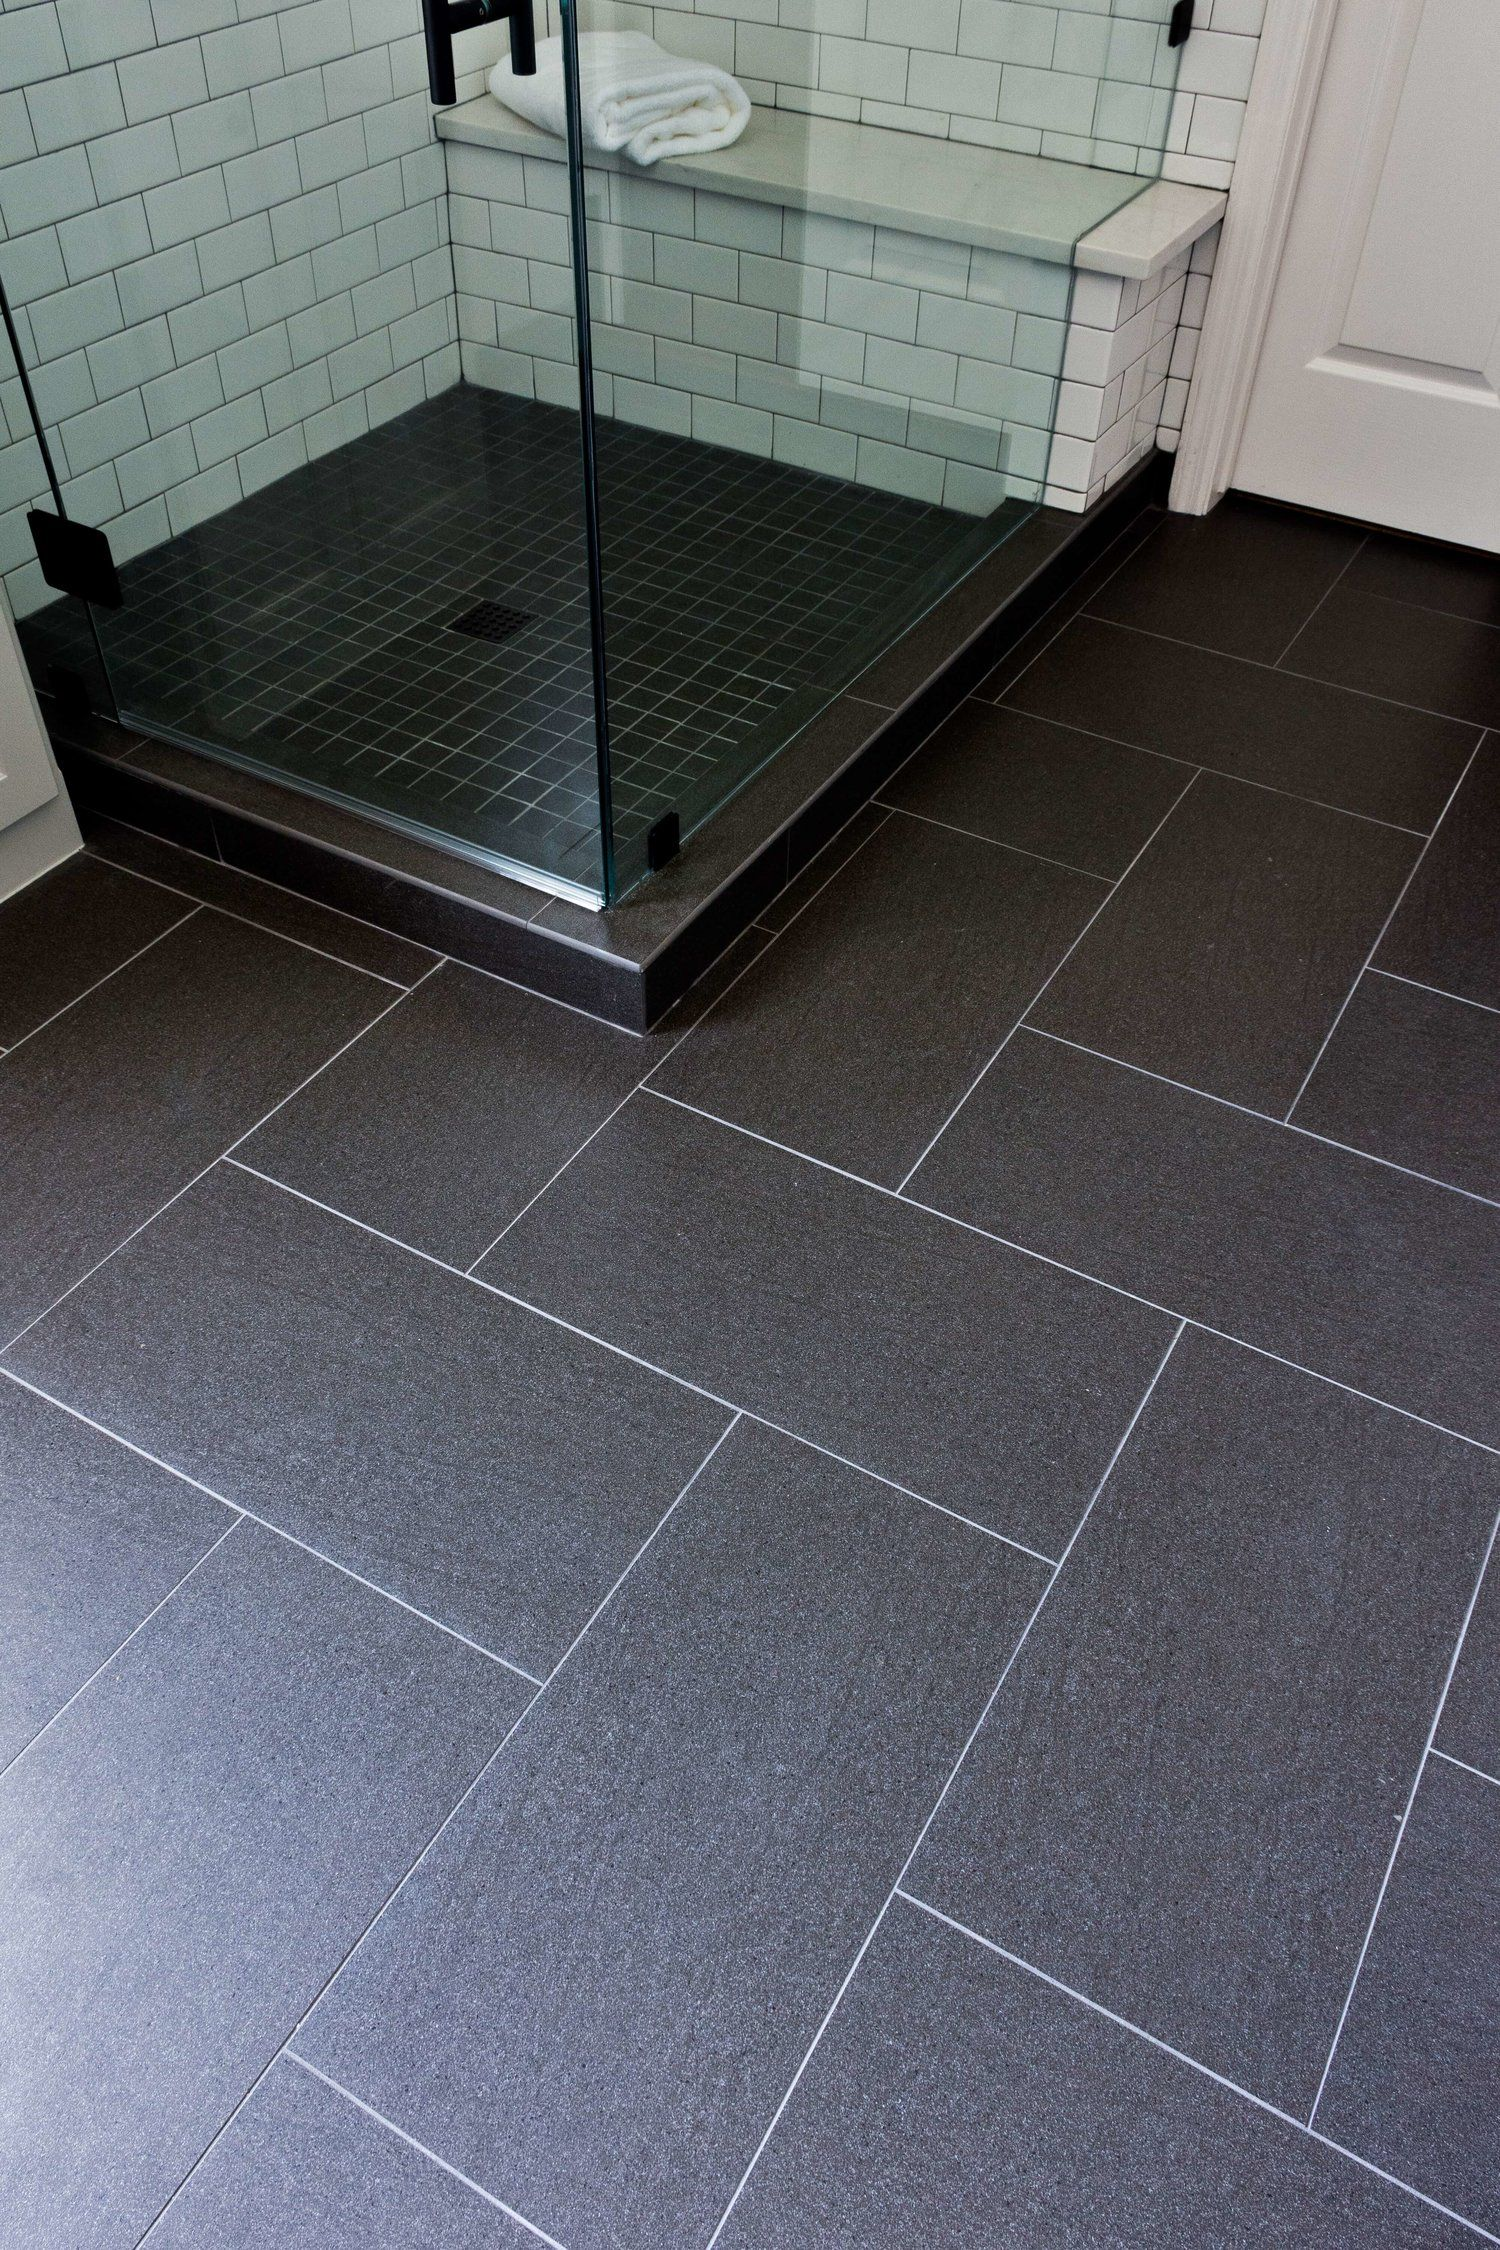 Before And After A Dated Builder Bathroom Becomes An Eye Catching Modern Retreat Designed Black Tile Bathrooms Tile Bathroom Bathroom Remodel Cost